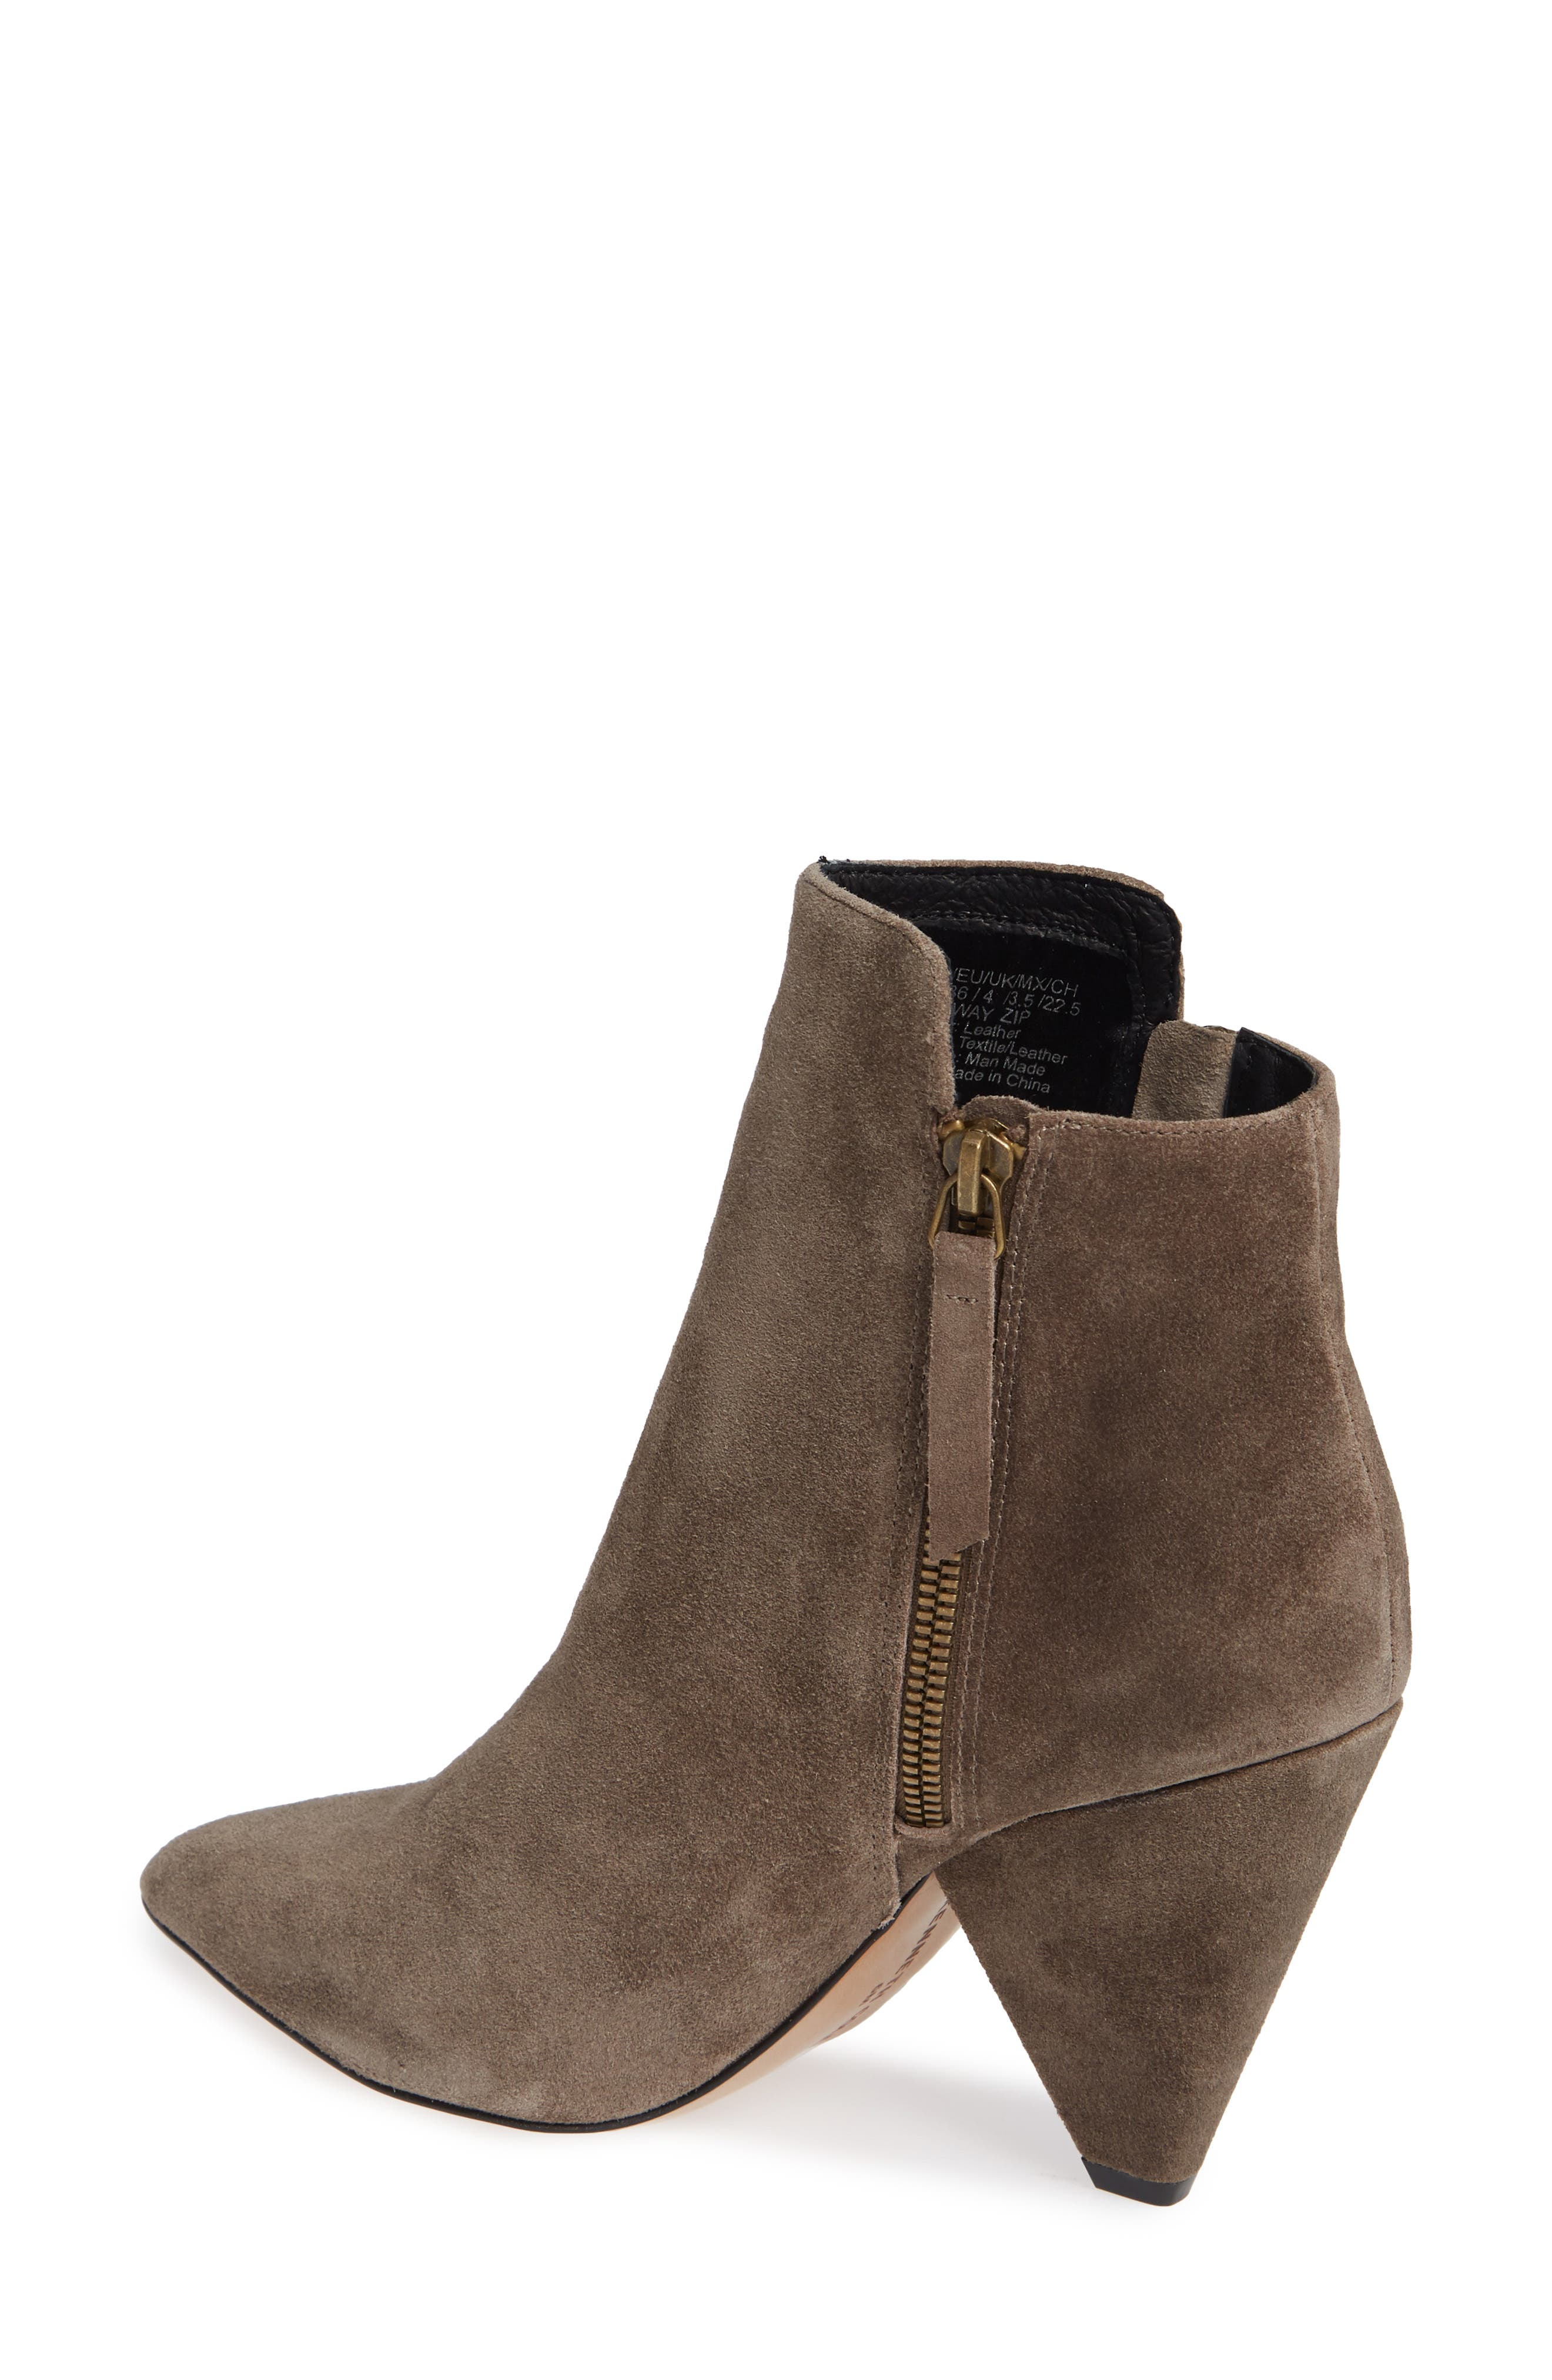 KENNETH COLE NEW YORK,                             Galway Bootie,                             Alternate thumbnail 2, color,                             063